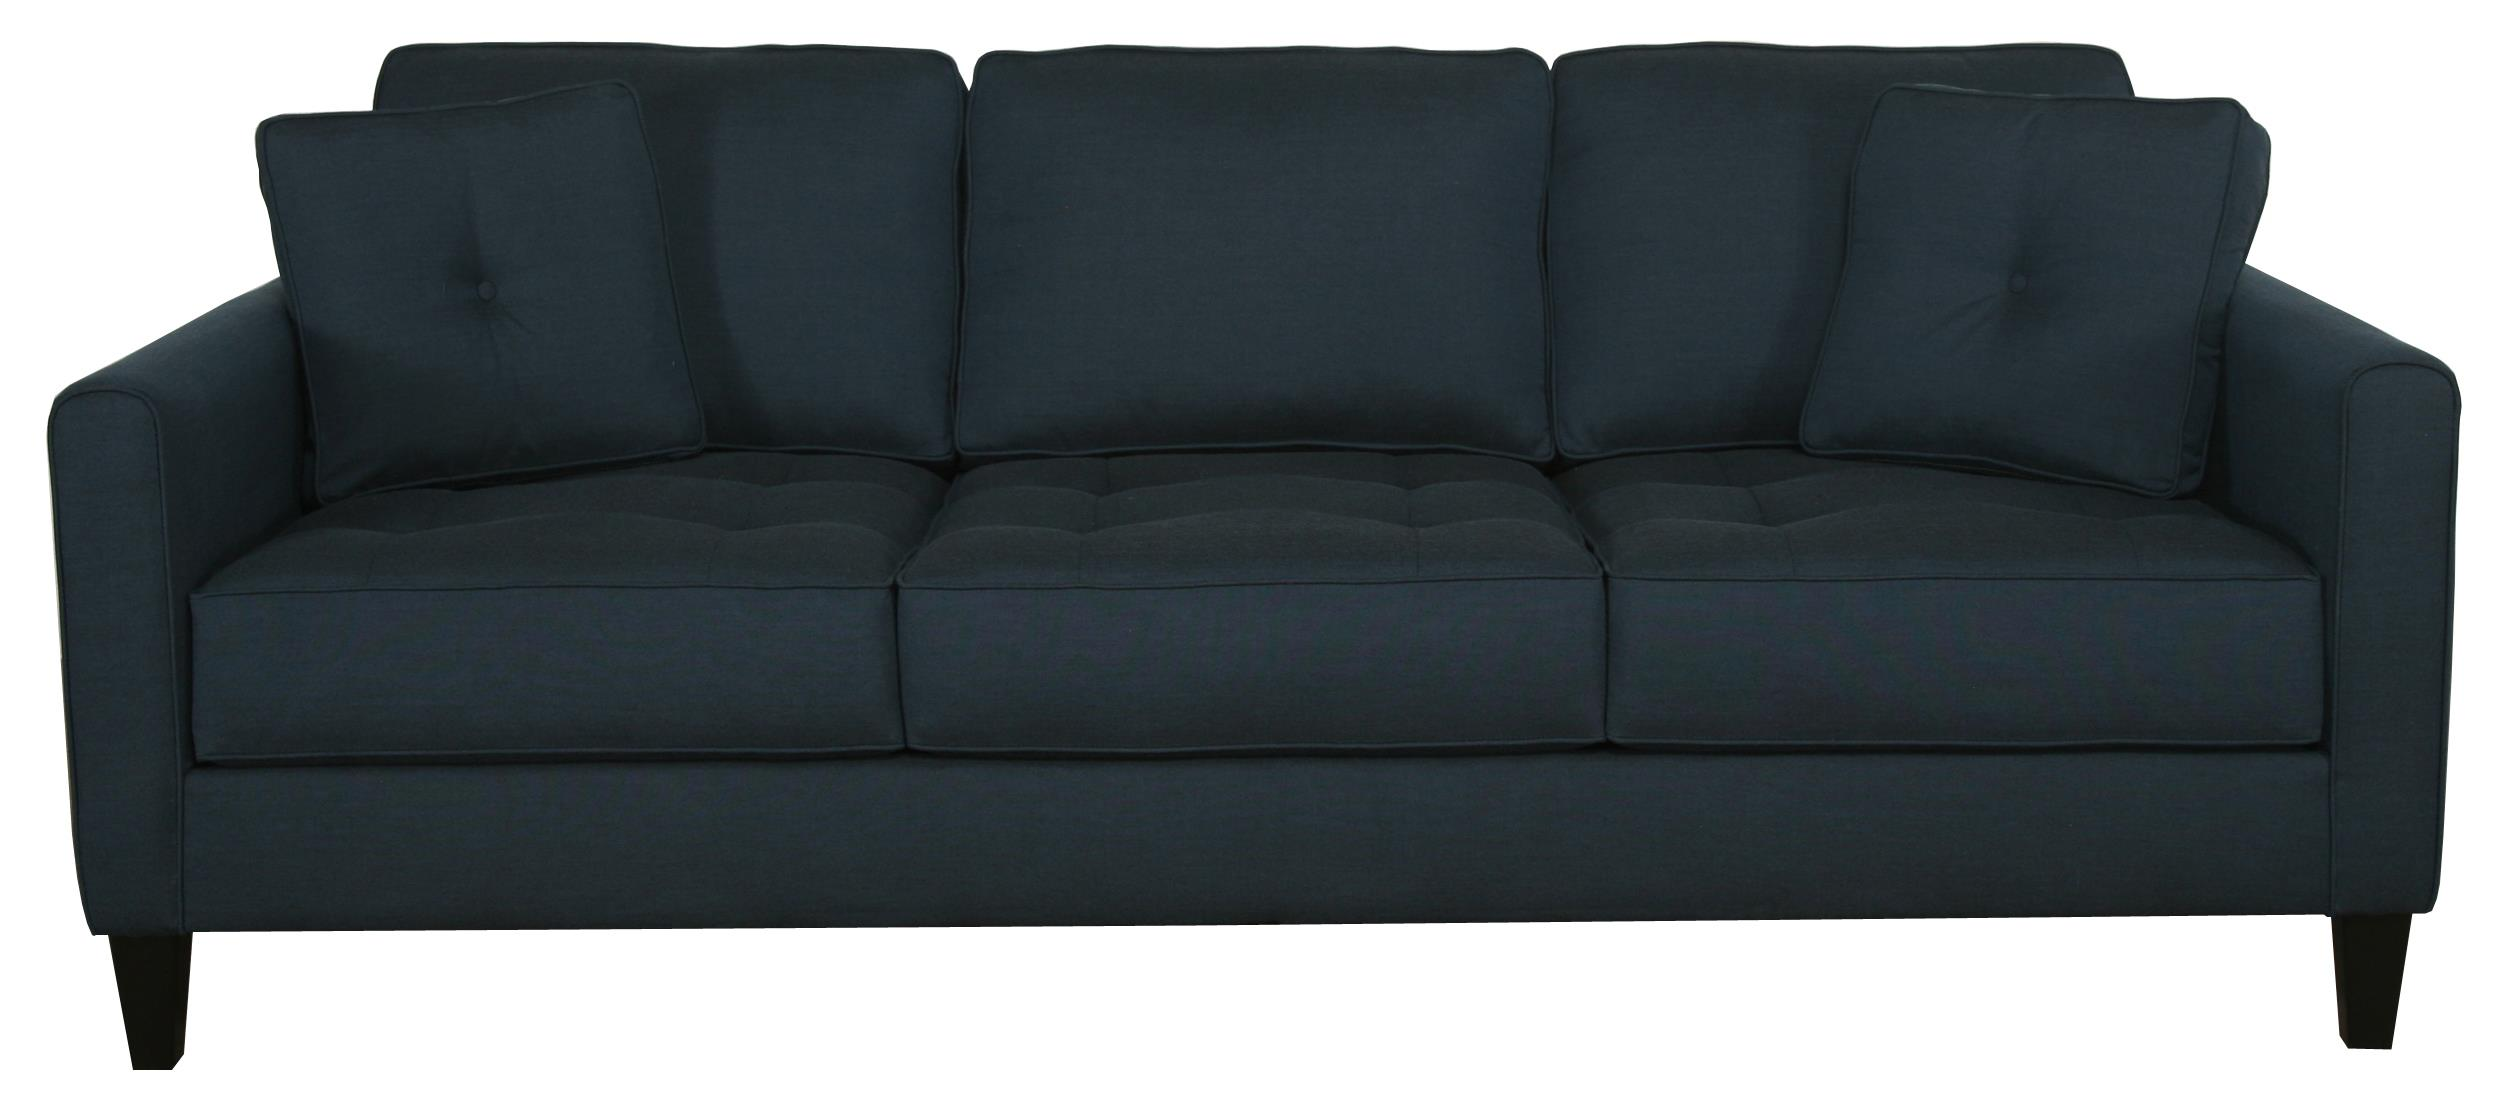 Contemporary Sofa with Track Arms by Bauhaus